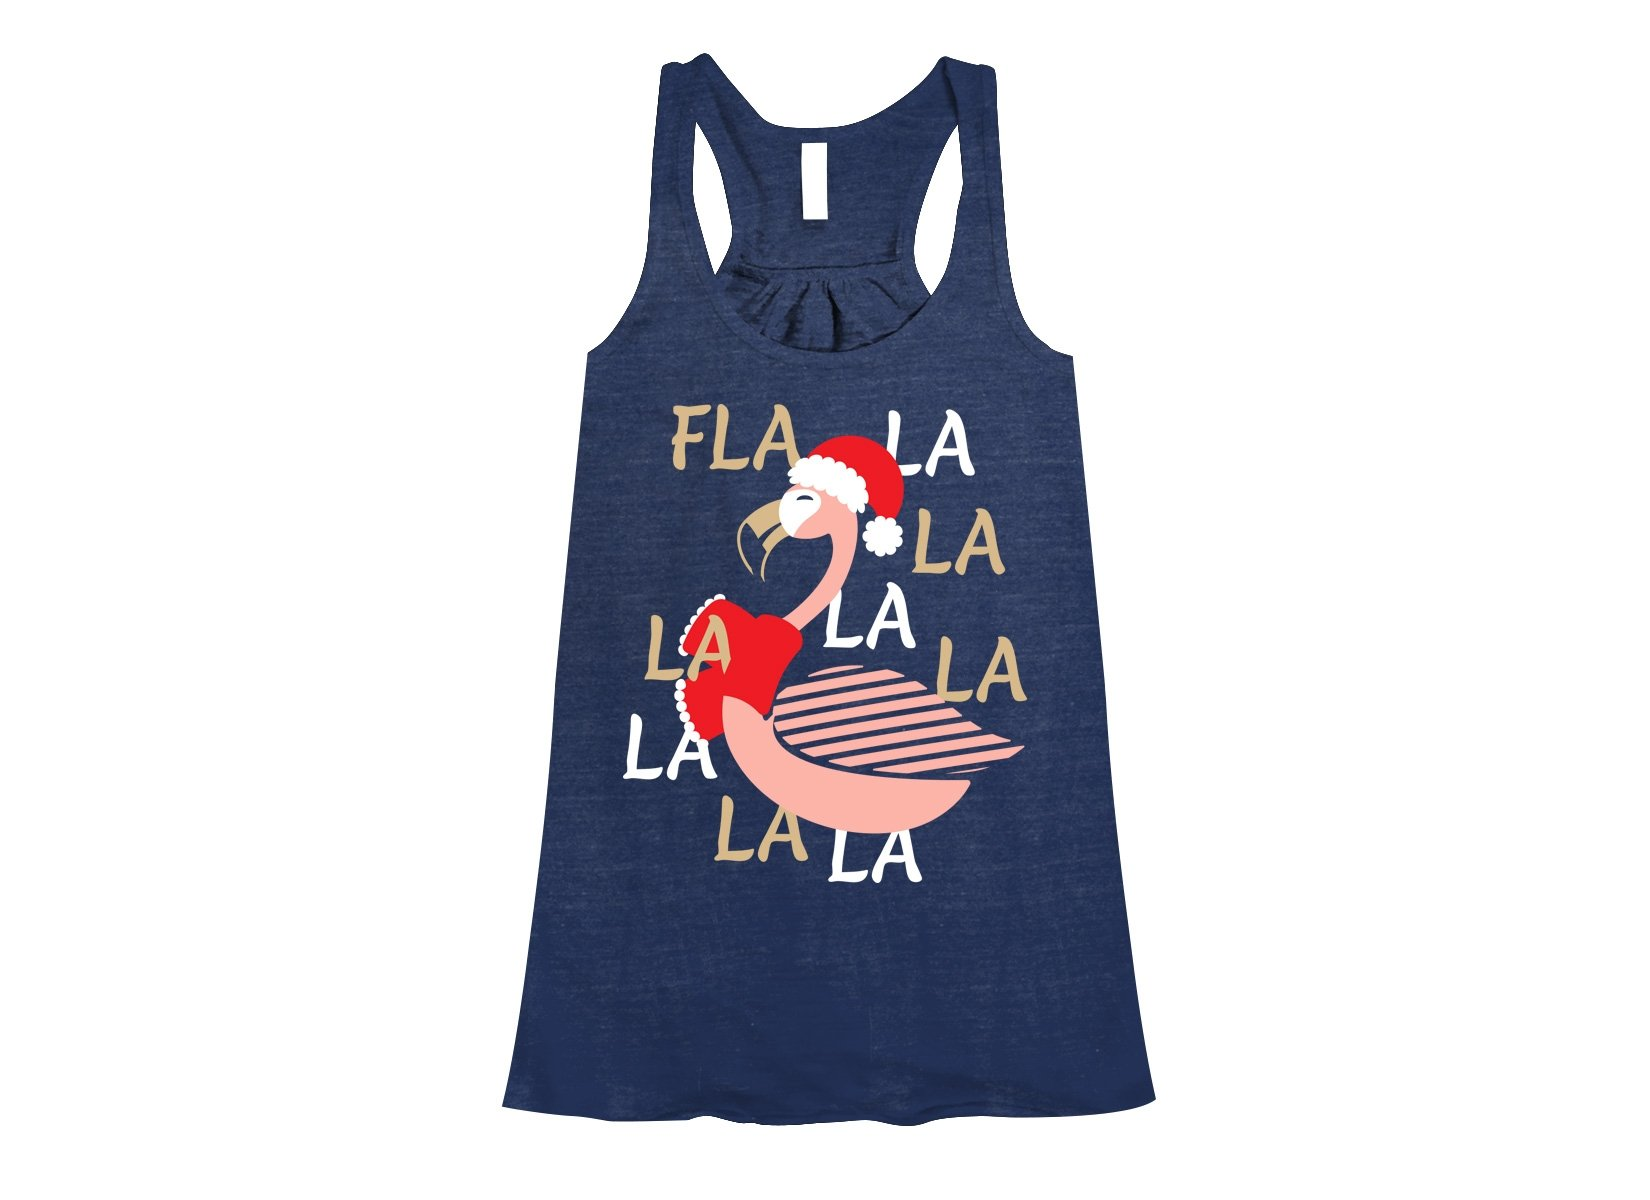 Fla La La Lamingo on Womens Tanks T-Shirt